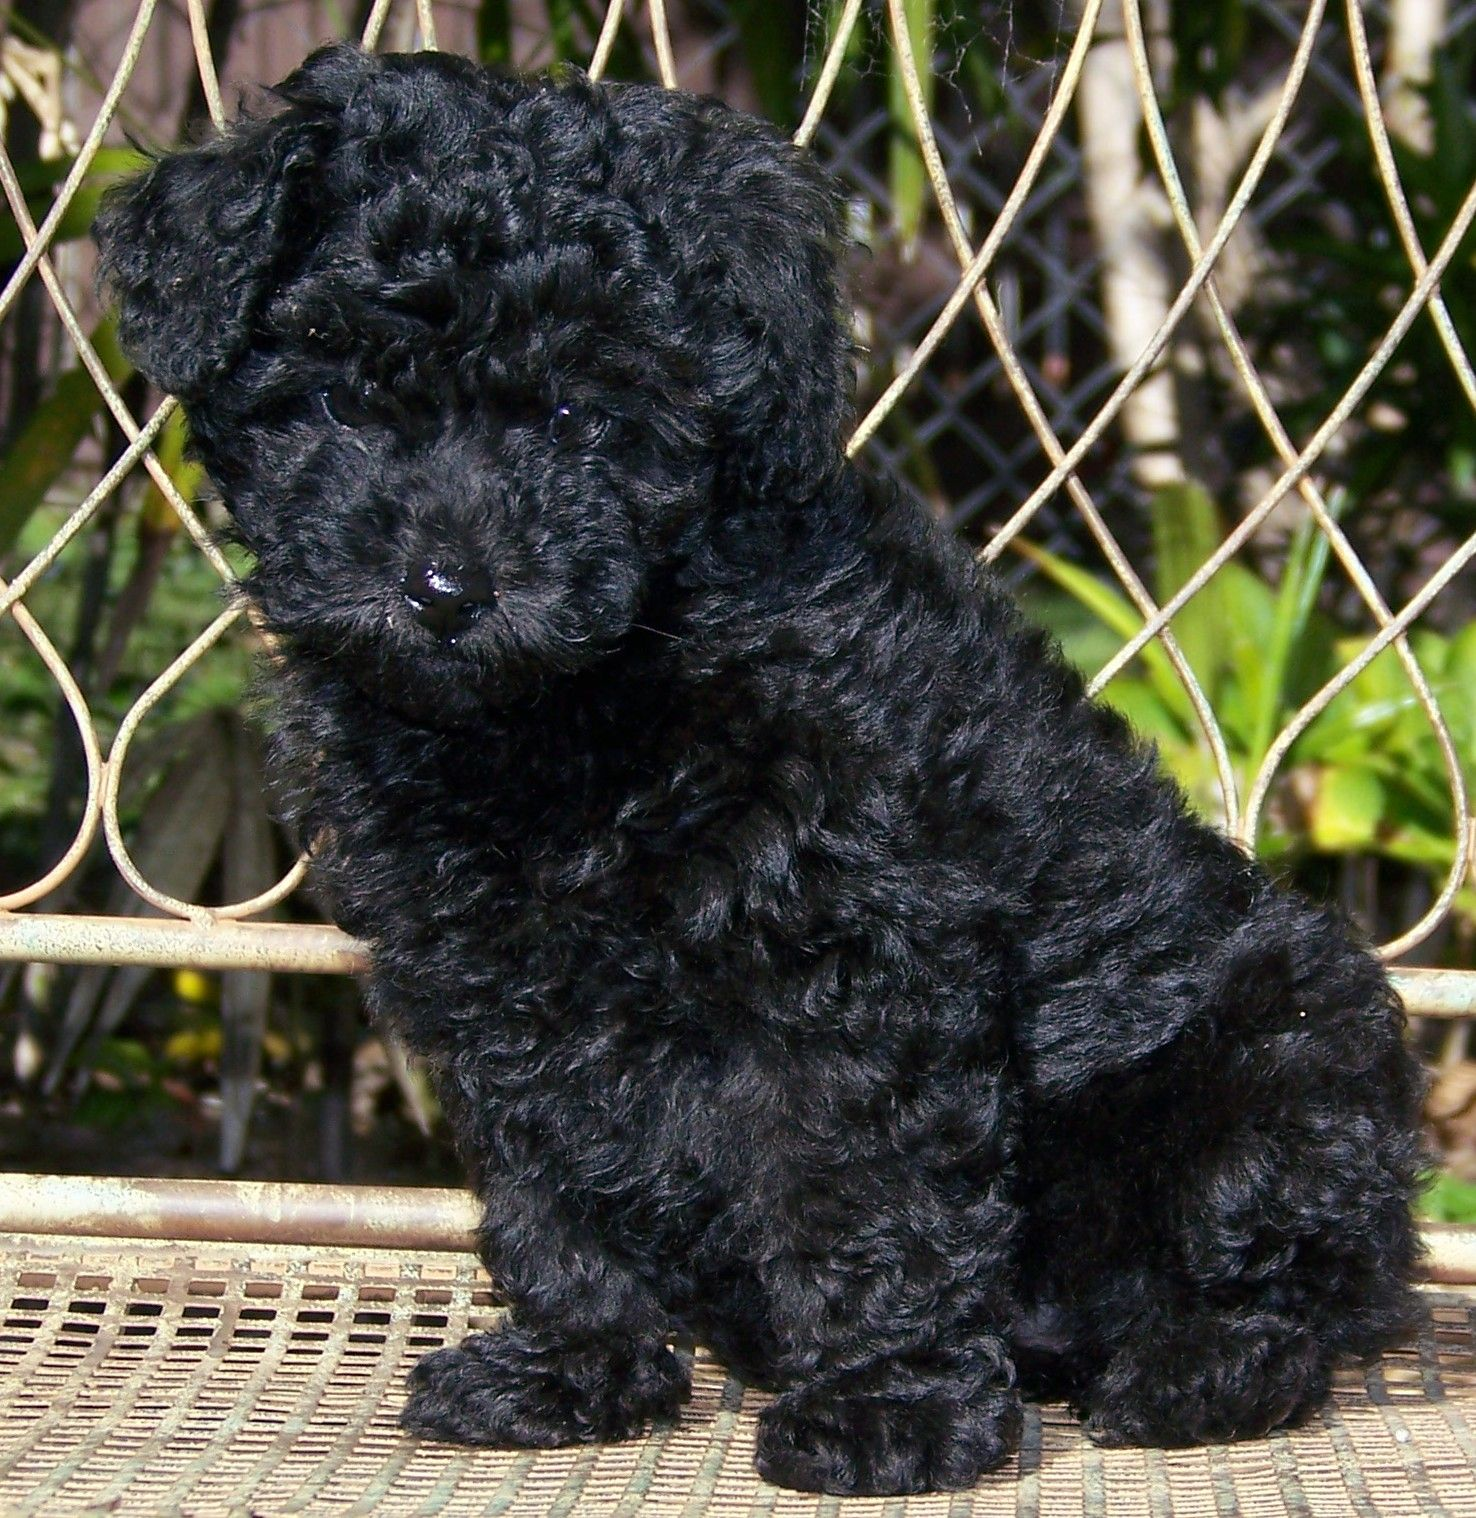 Poodles Are So Smart And Sweet Cuccioli Di Cani Cani Felici